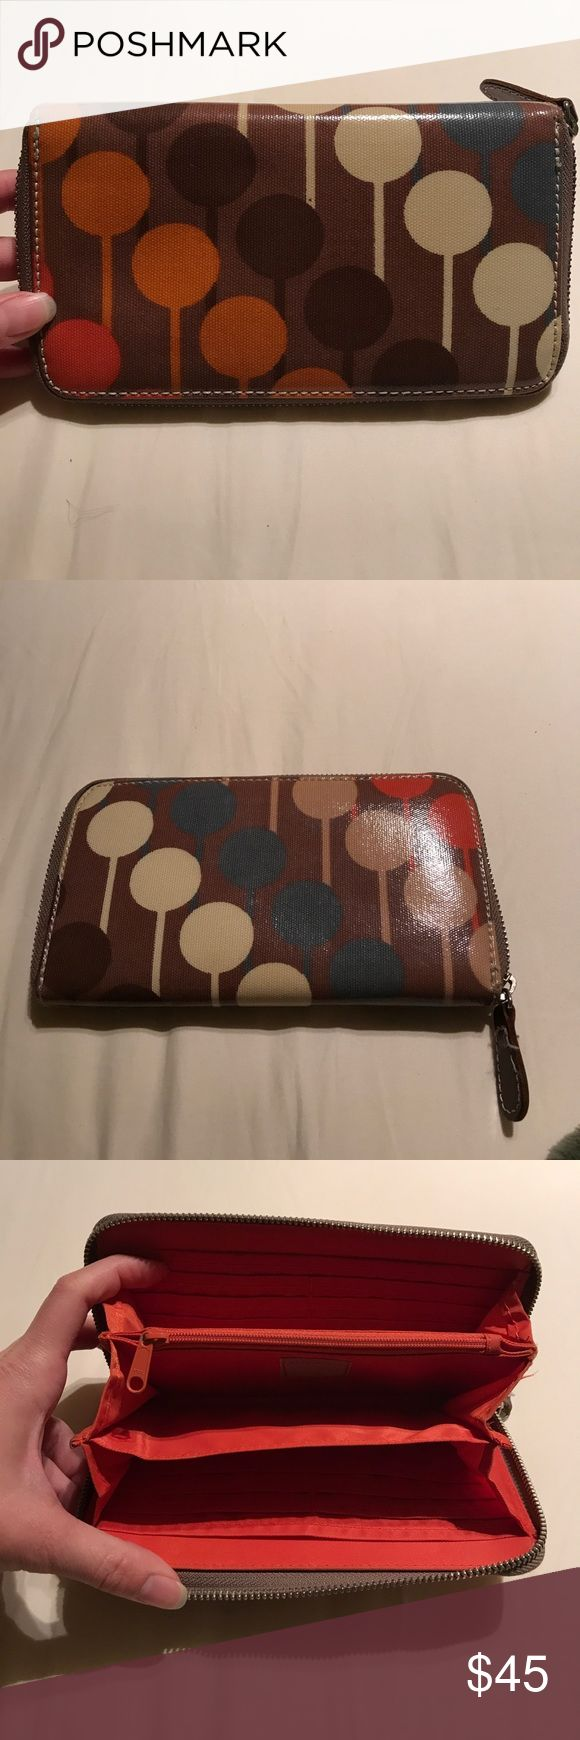 EUC Orla Kiely wallet EUC Orla Kiely wallet in the lollipop design. No signs of wear.  Minor dirt on the inside zip pocket from change.  Excellent condition! Orla Kiely Bags Wallets